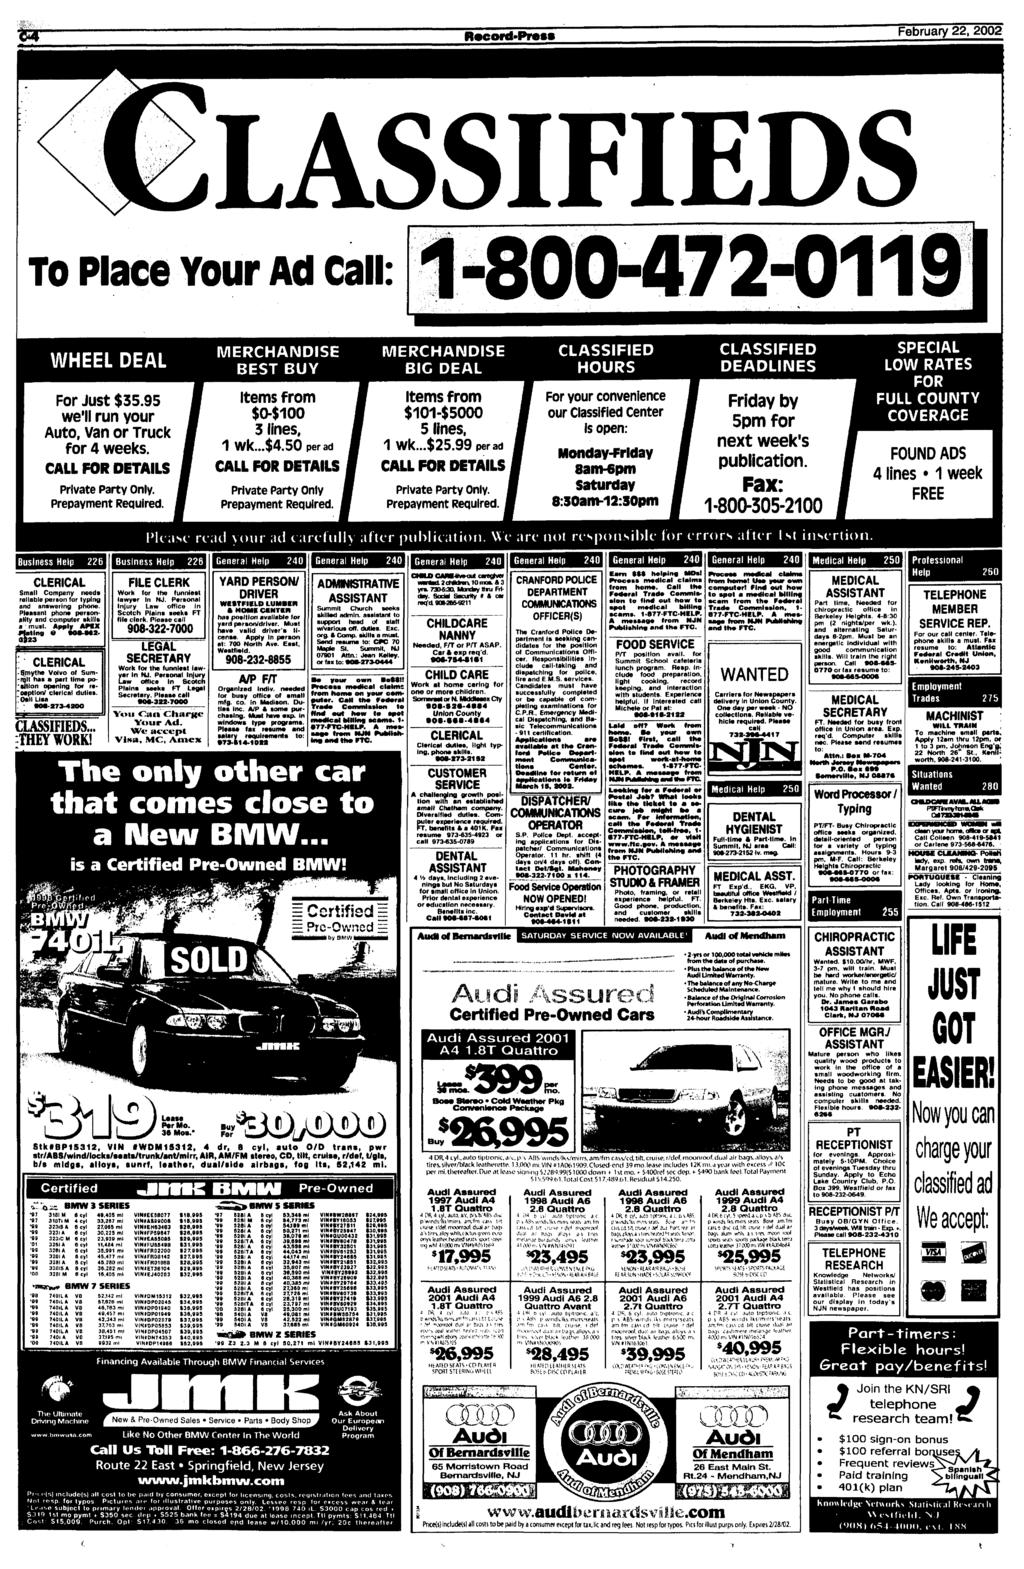 February 22, 2002 LASSIFIEDS To Place Your Ad Call 800-472-0119 WHEEL